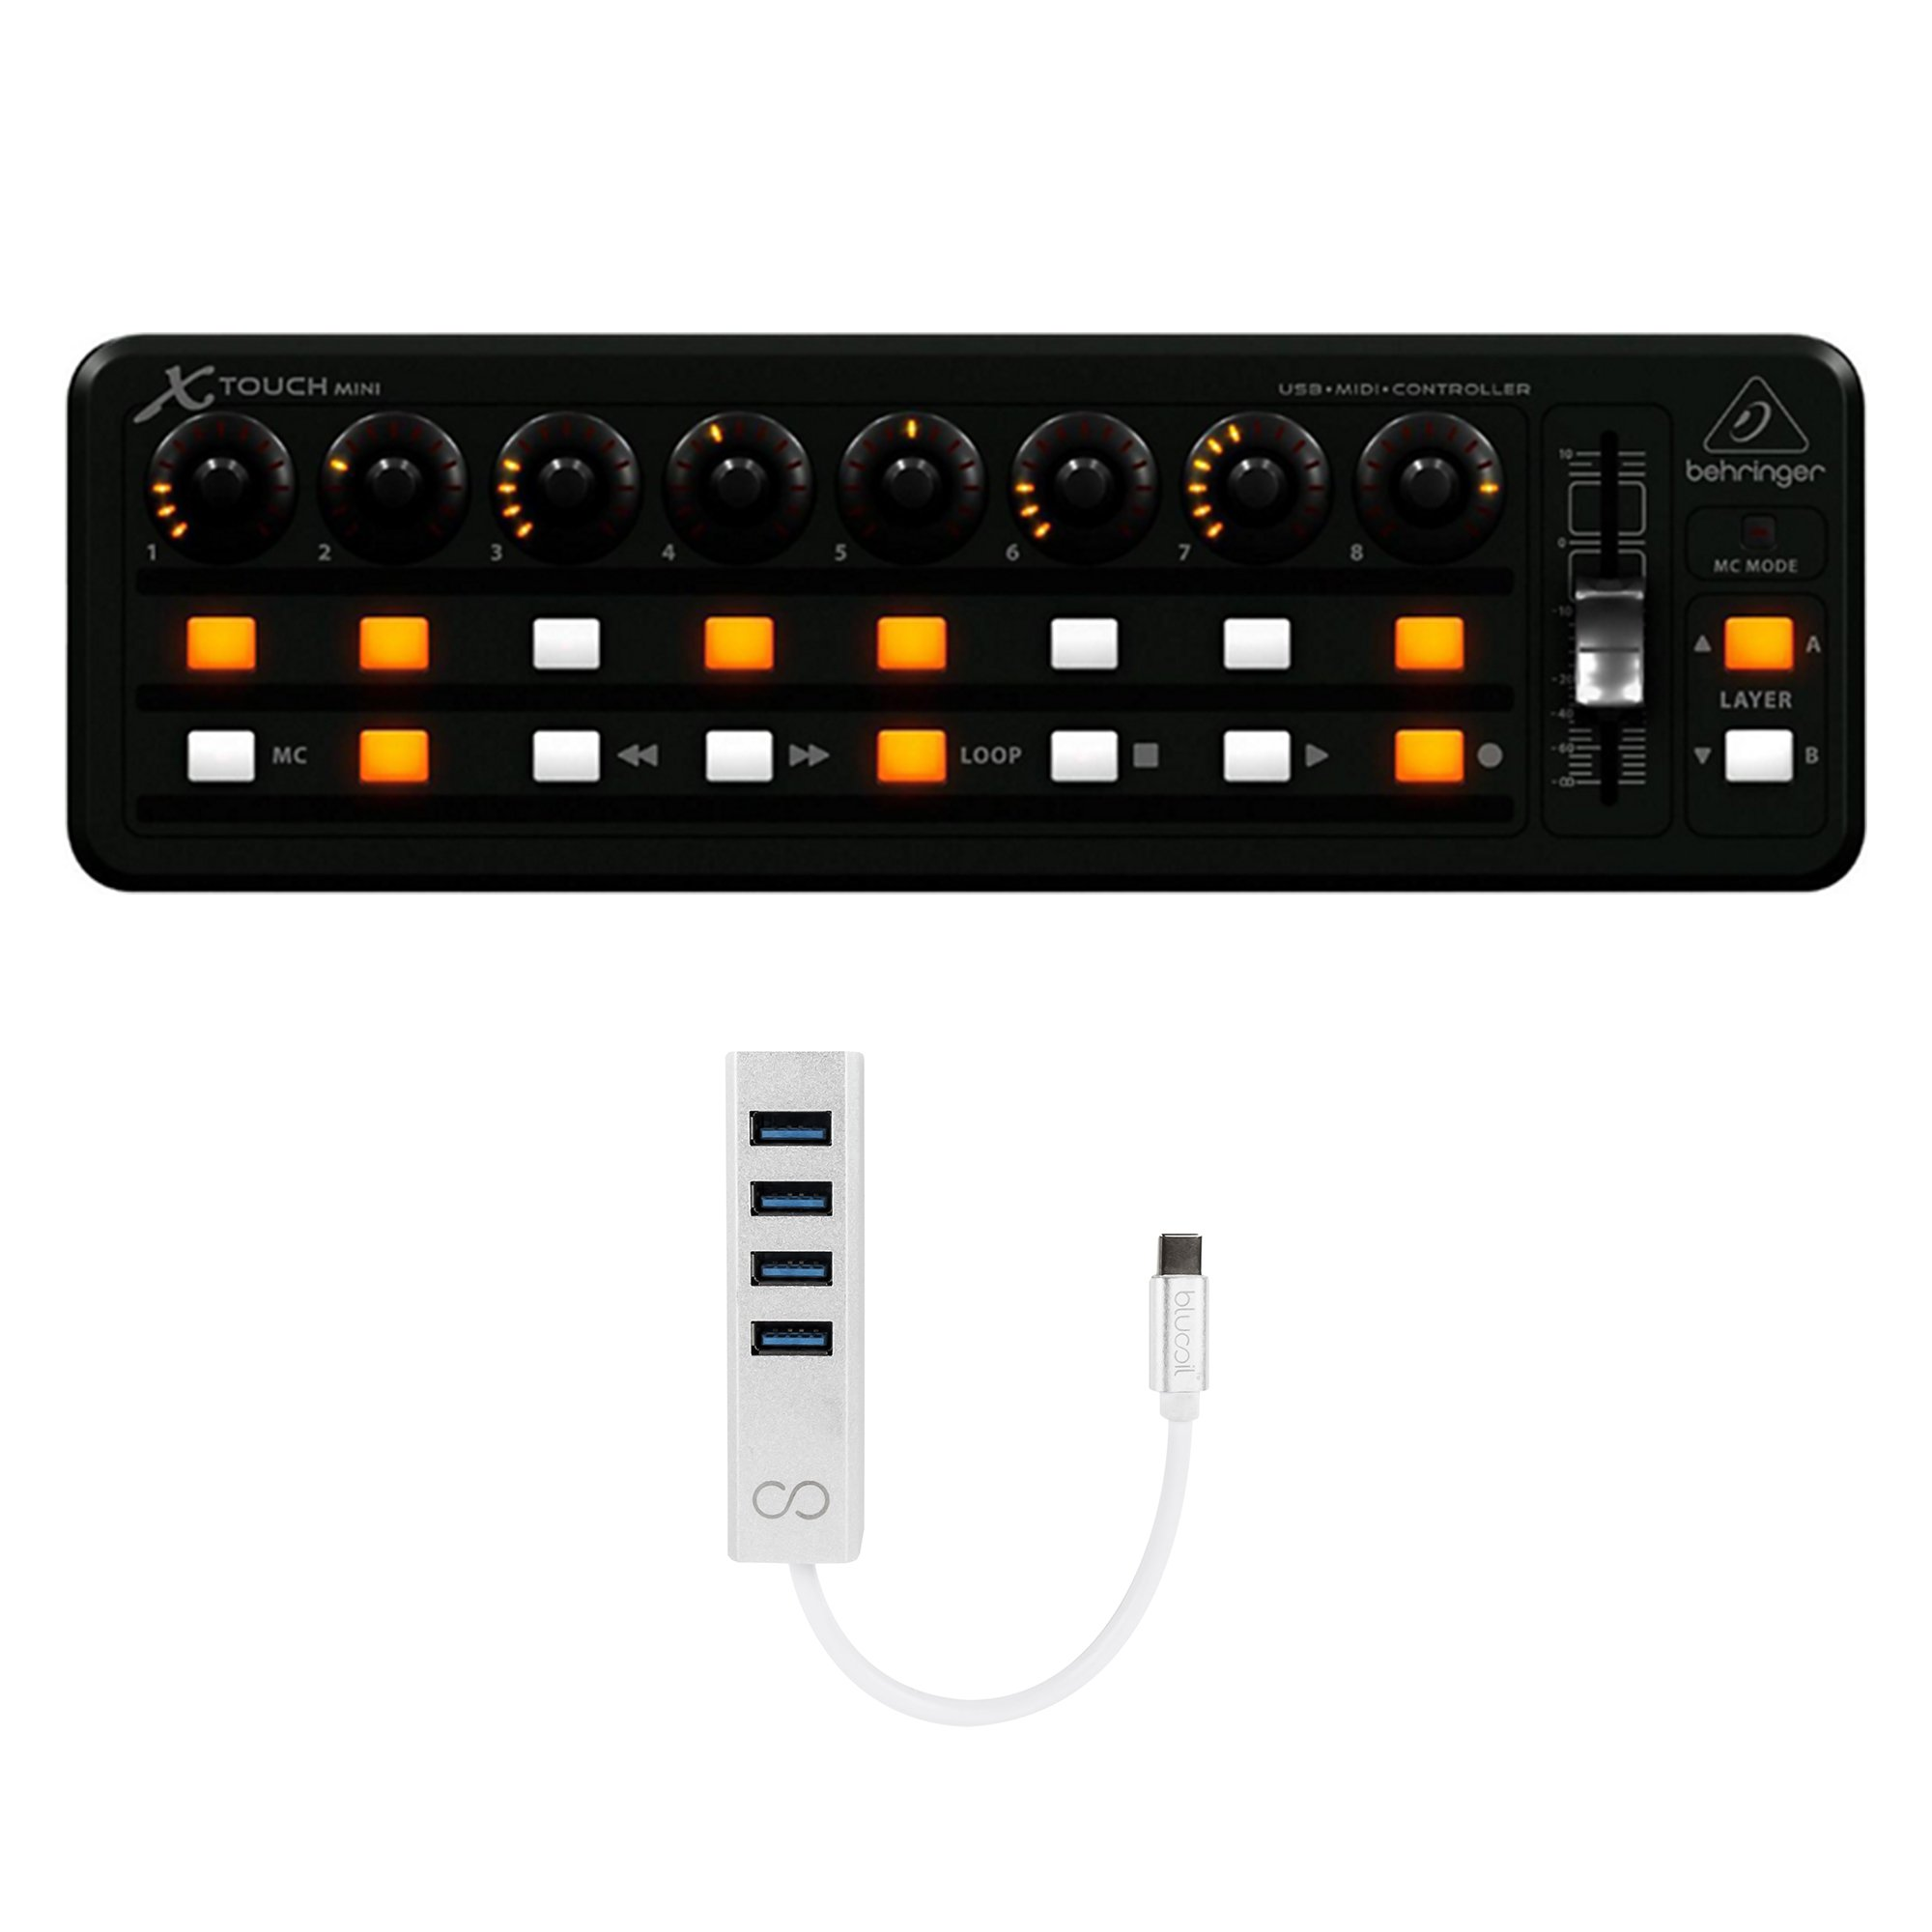 Behringer X-TOUCH MINI USB Mixing Controller with 8 Rotary Control Knobs BUNDLED WITH Blucoil USB Type-C Mini Hub with 4 USB Ports